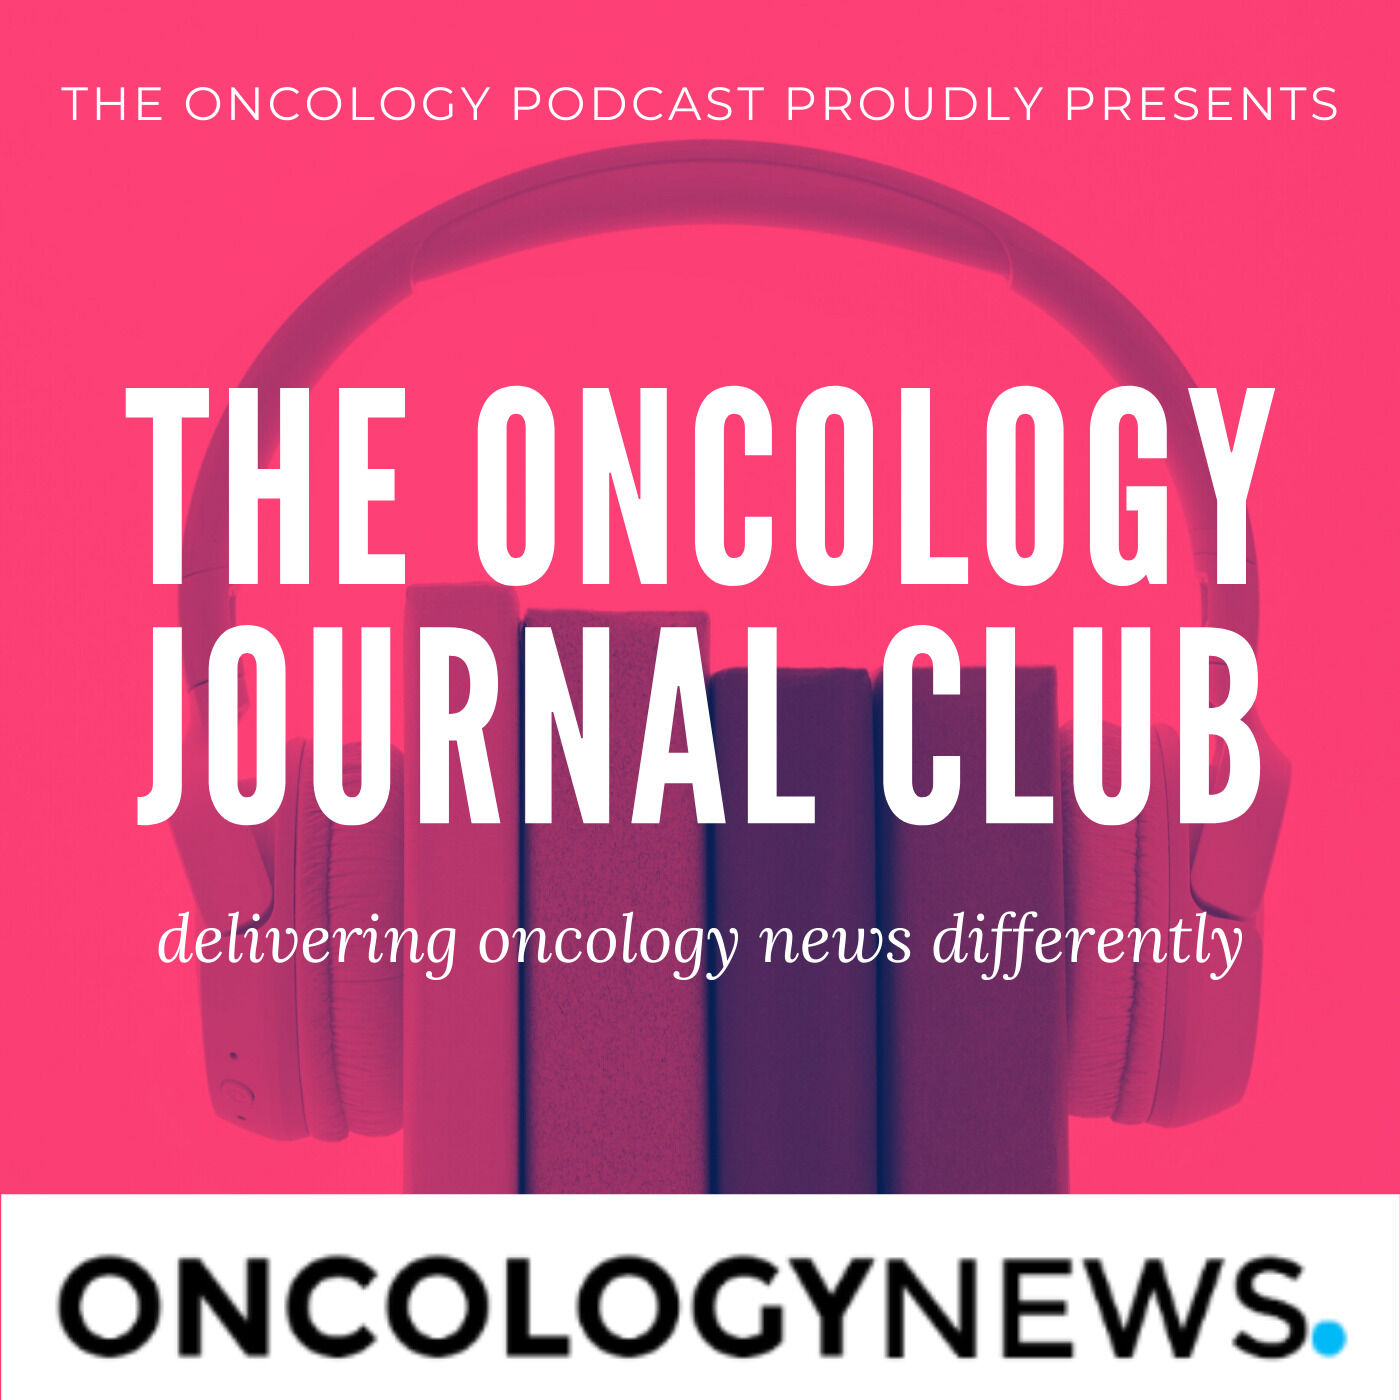 The Oncology Journal Club Episode 3: ASCO 2020 Review with Special Guest Professor Natasha Leighl on Lung Cancer and much more...